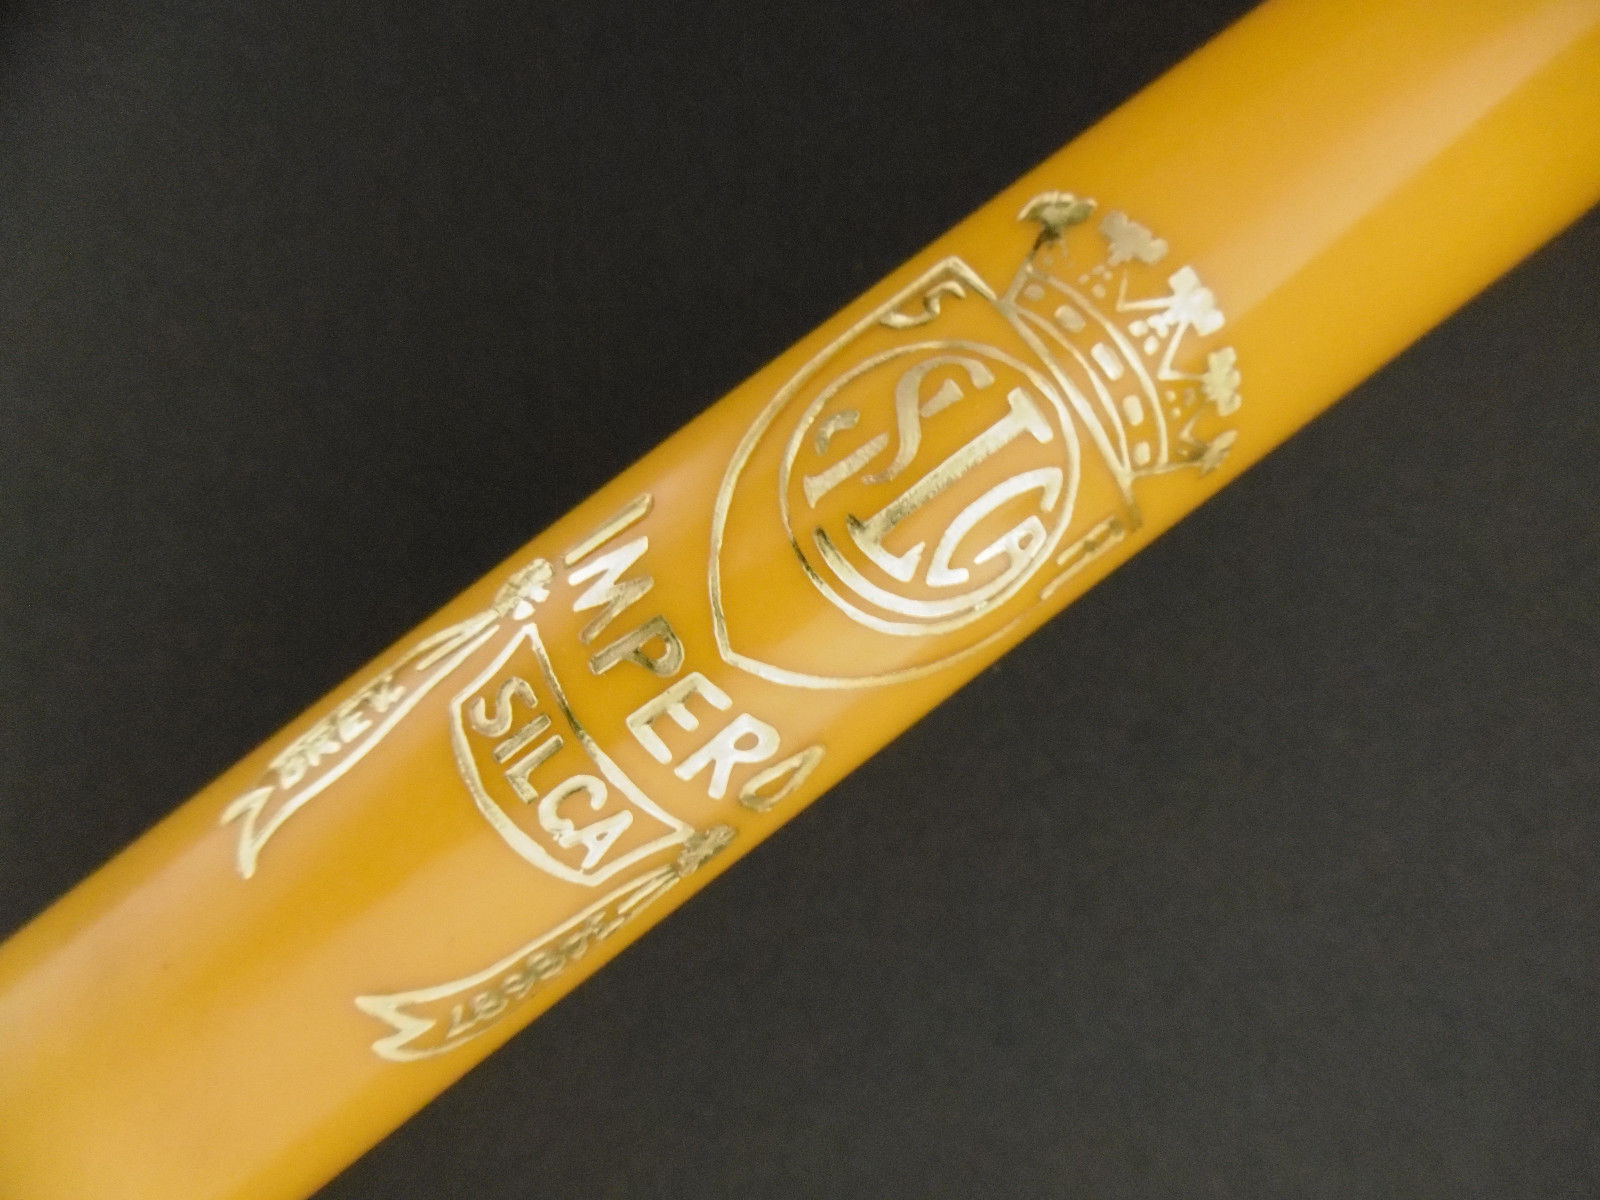 New pump Silca Impero Brevettato  road bicycle bike yellow  presta dunlop 520mm  your satisfaction is our target